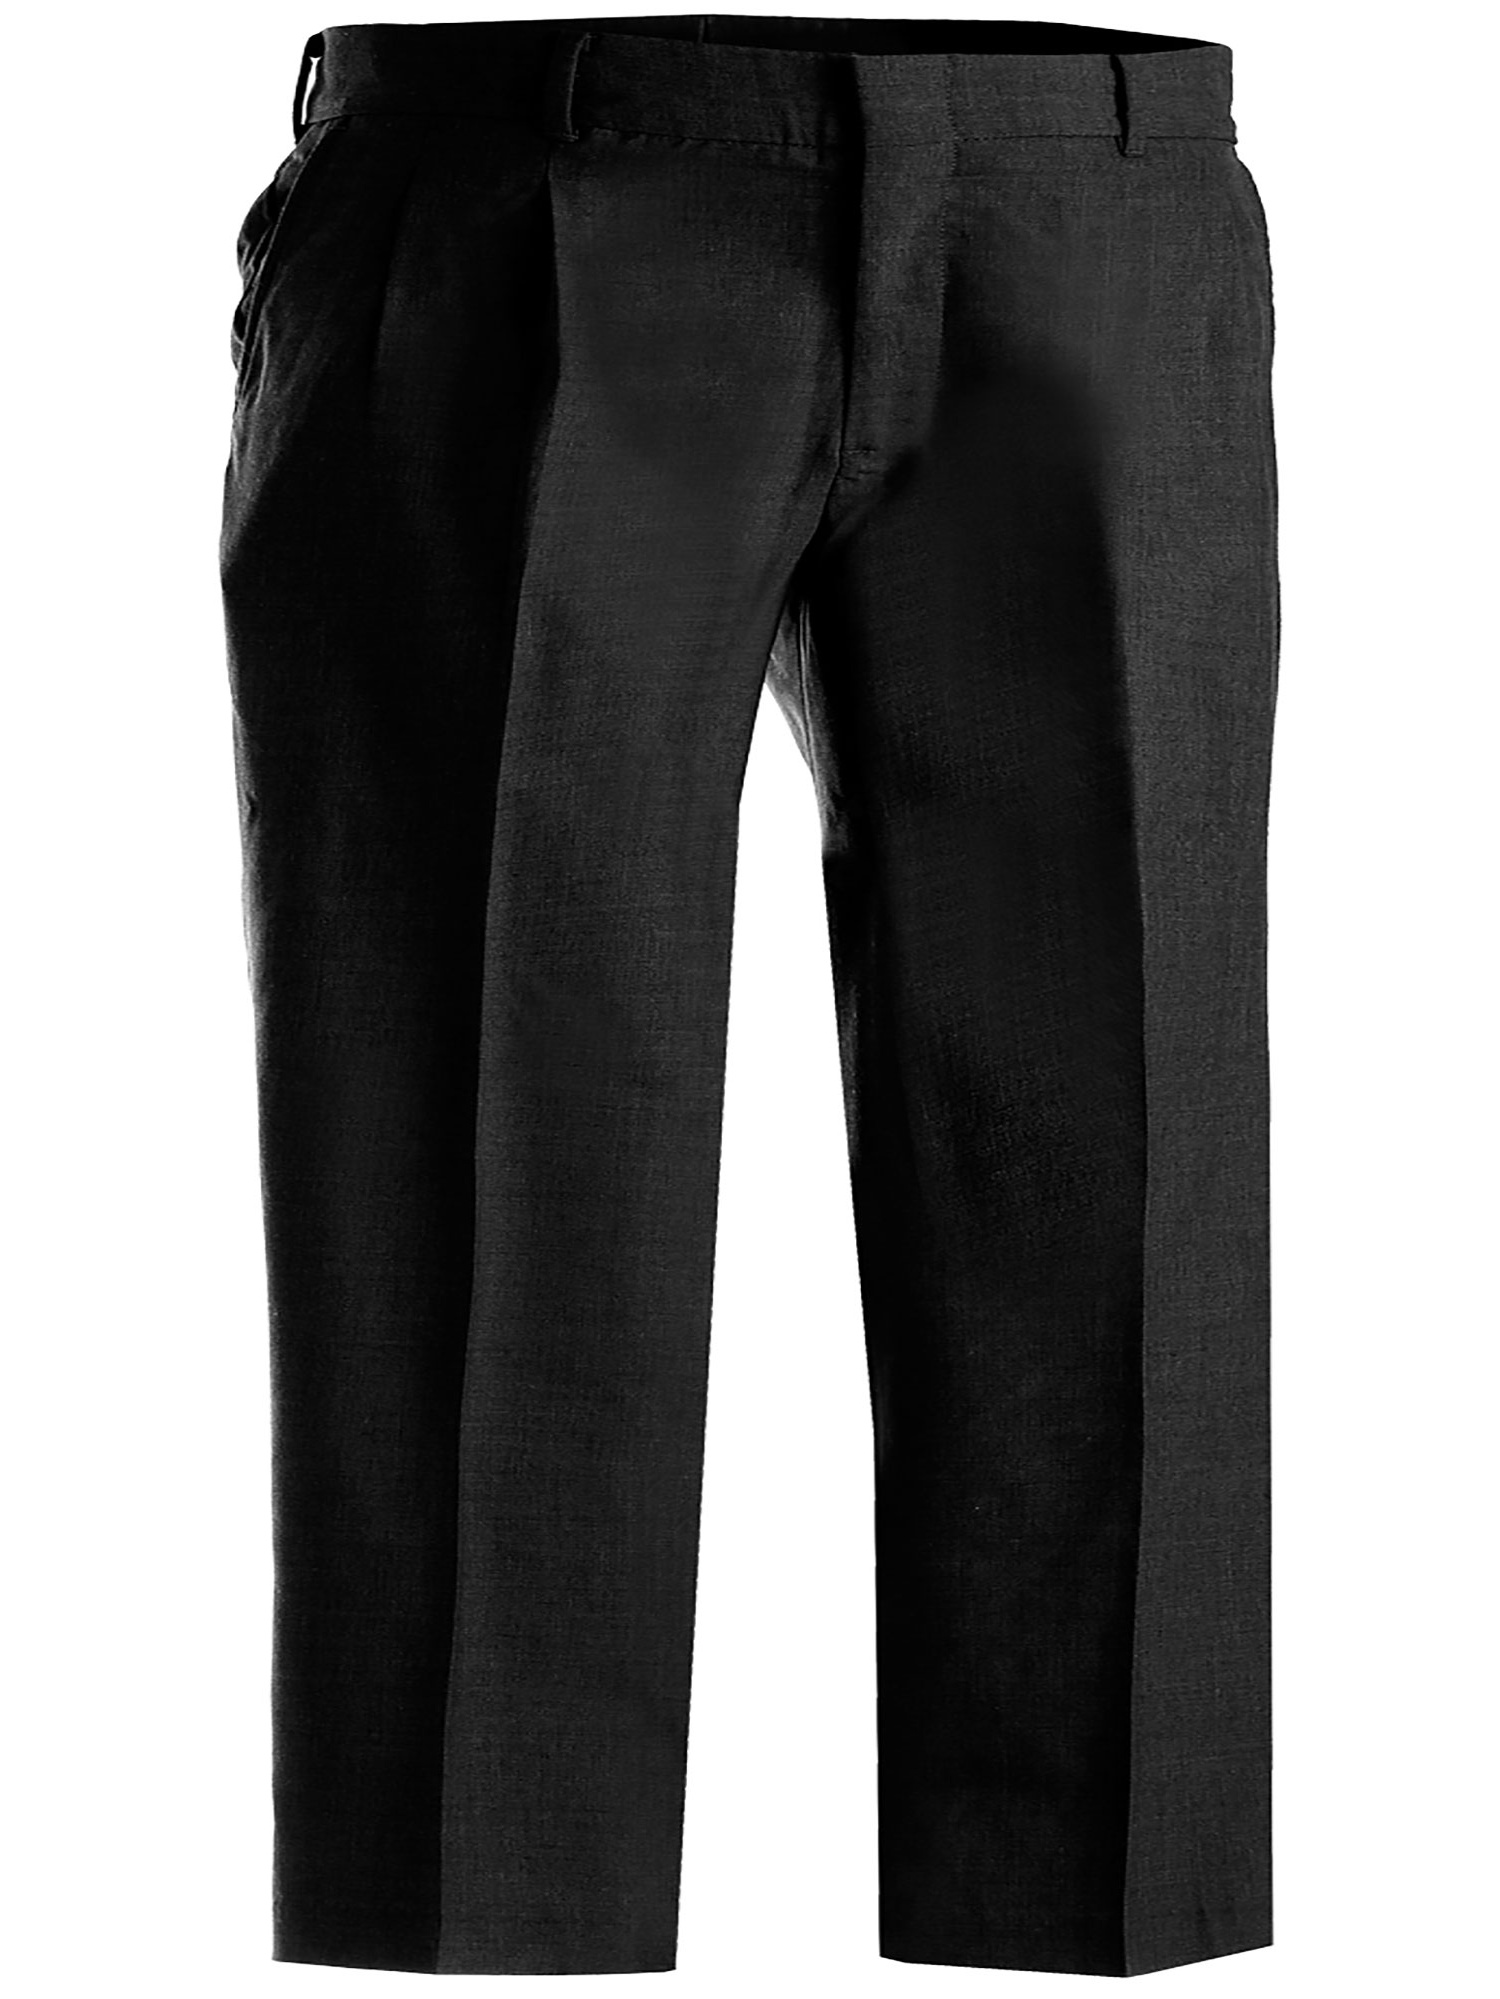 Edwards Garment Men's Lightweight Washable Pleated Dress Pant, Style 2620